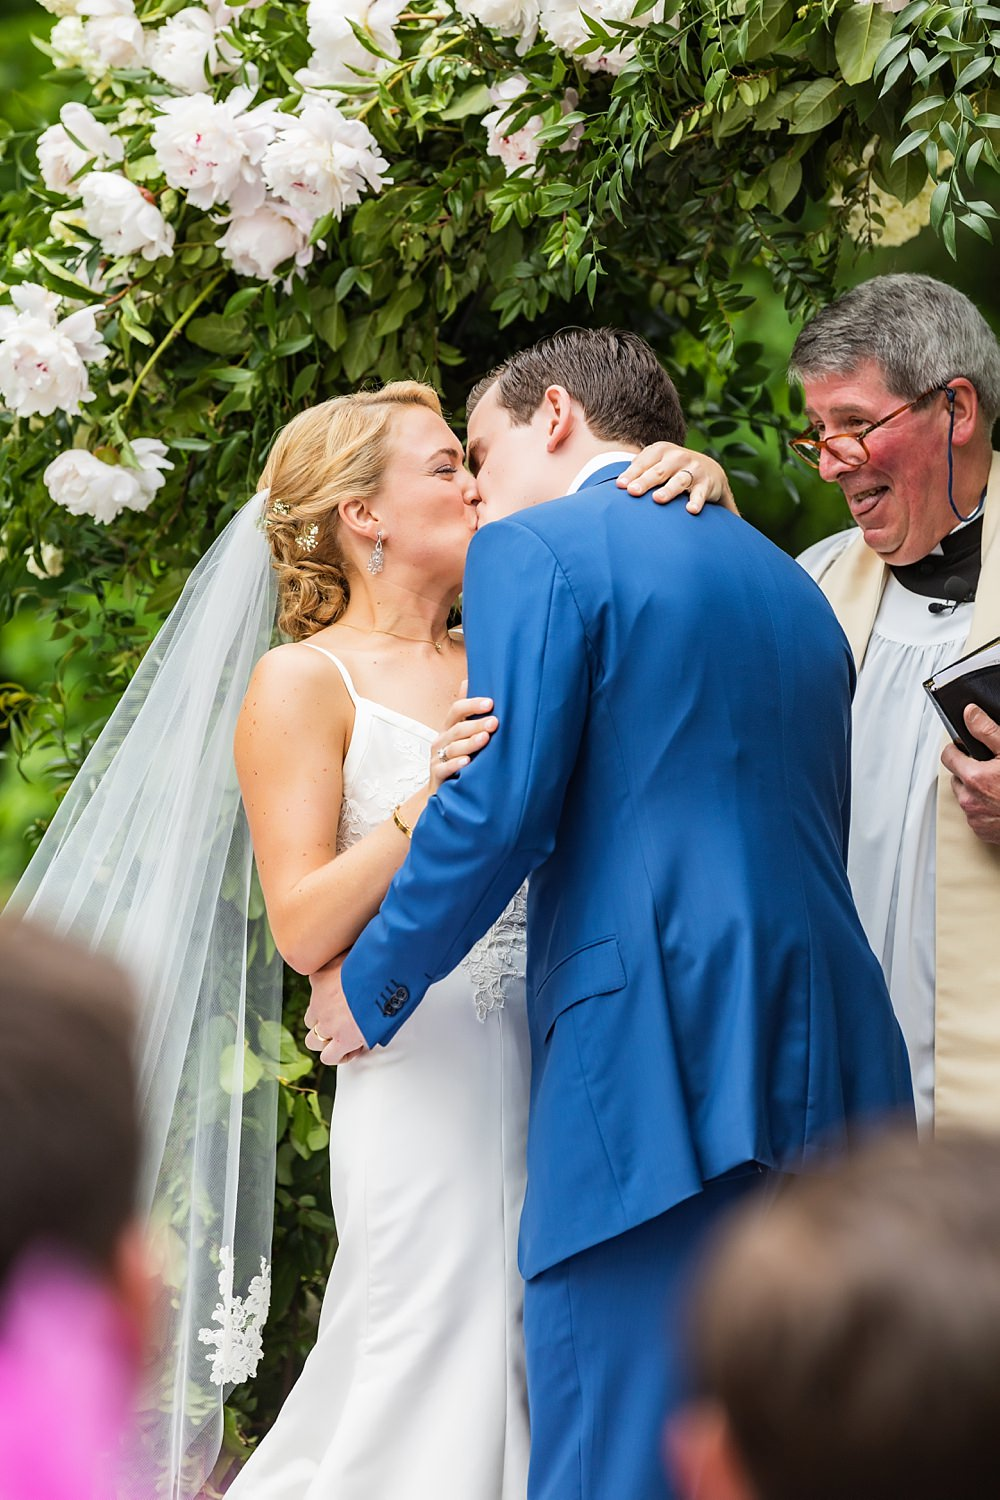 greenwich wedding : memorial day weekend wedding : jody ewen events : vue photography 0103